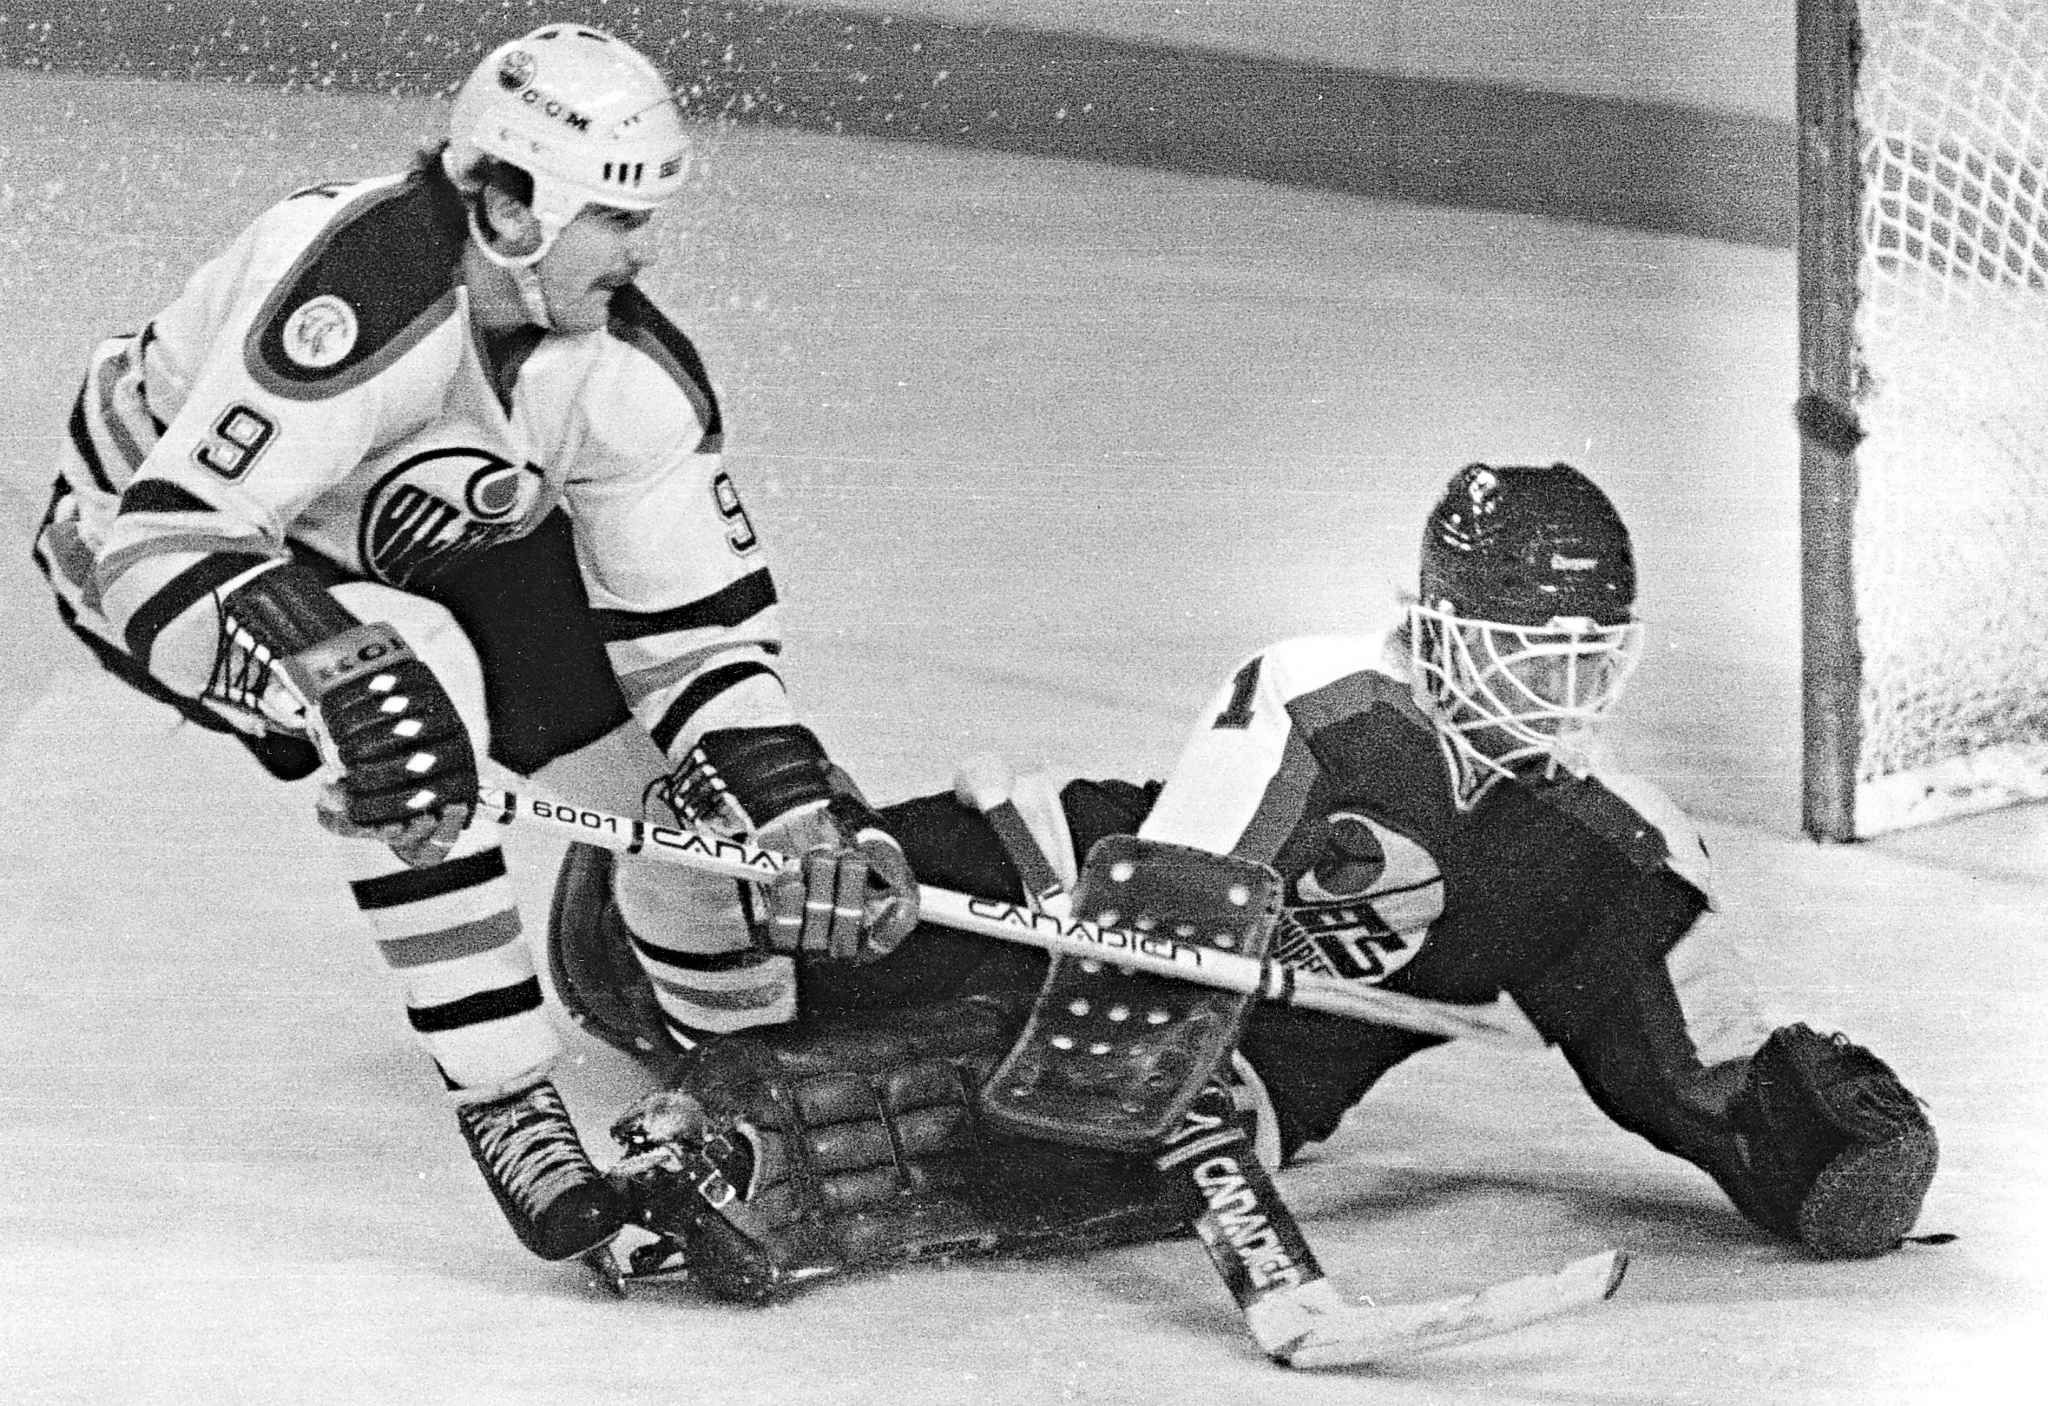 Edmonton Oilers' Glenn Anderson is stopped by Winnipeg Jets' goaltender Brian Hayward during NHL action in 1983.